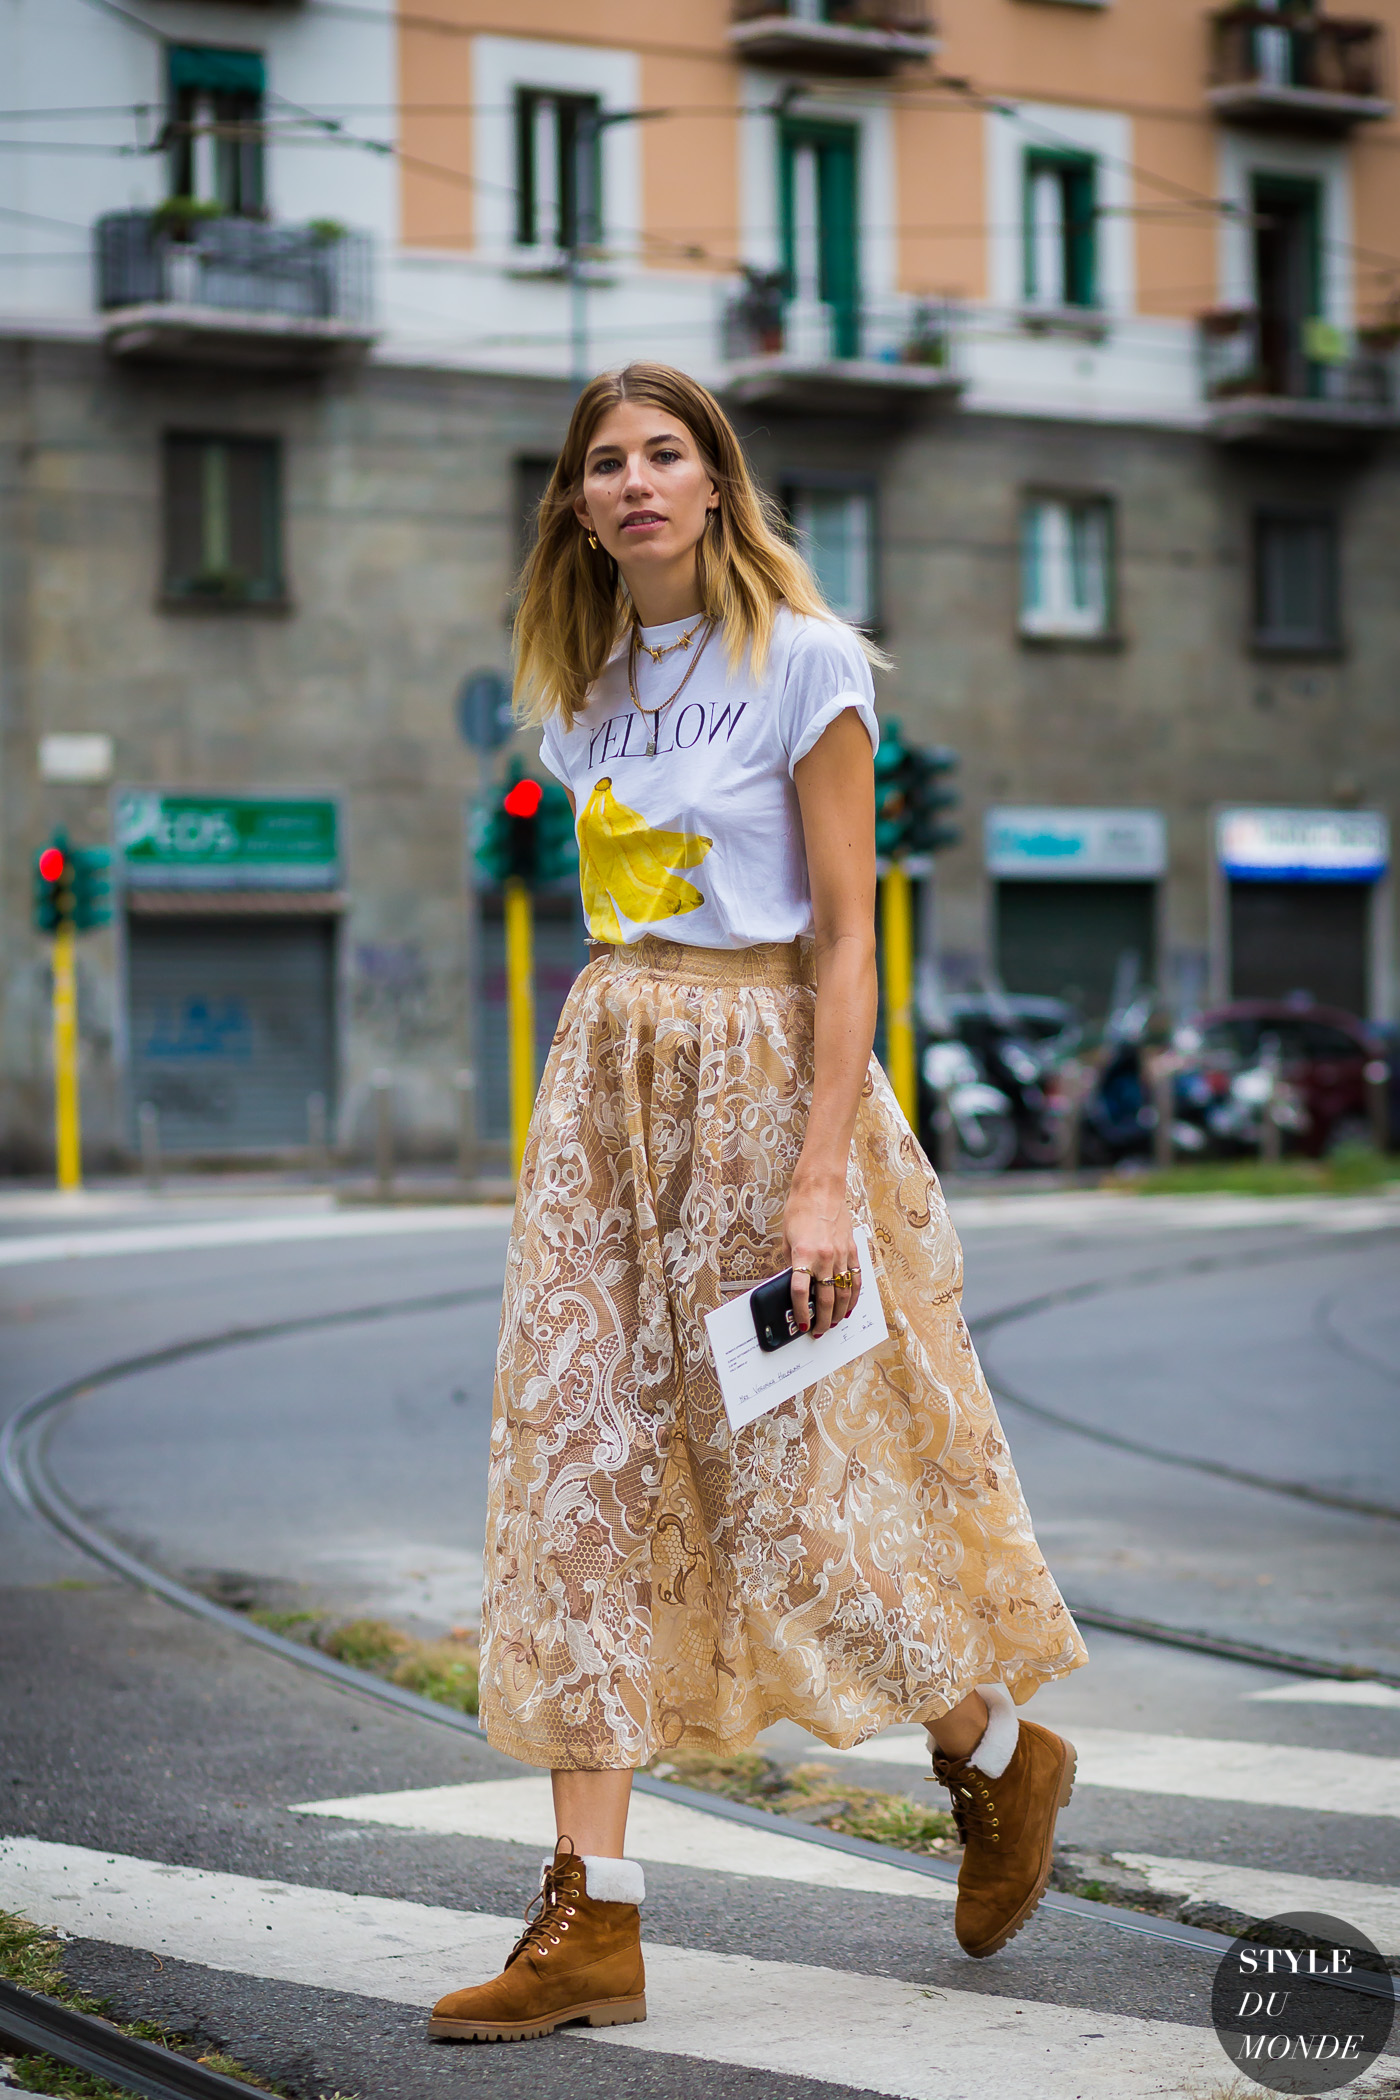 Golden chain necklaces - STYLE DU MONDE | Street Style Street Fashion Photos